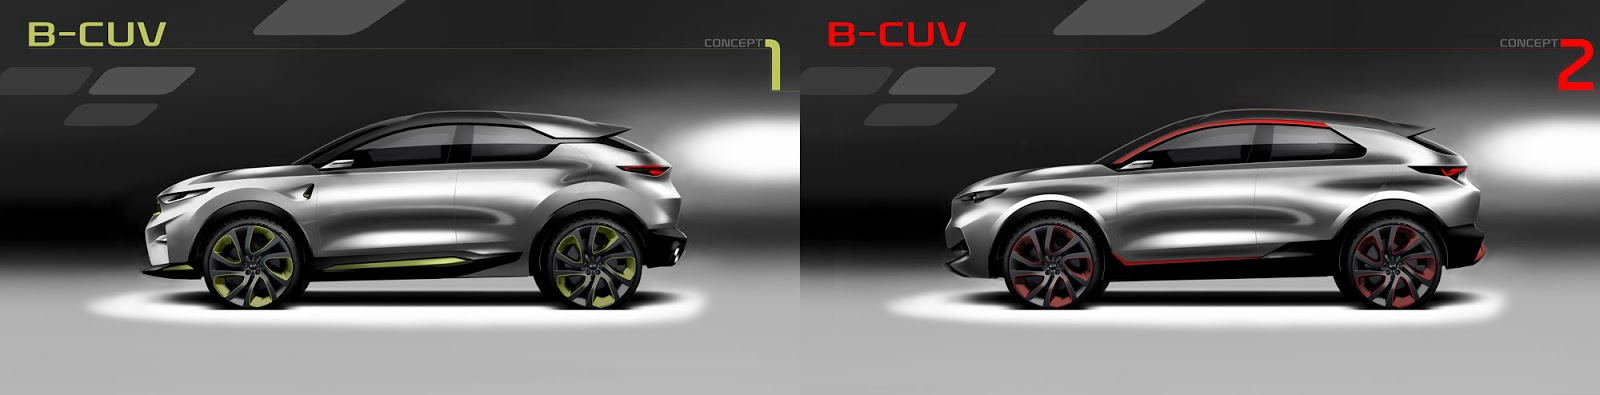 Kia Stonic sketch - options 1 and 2 styling from the side